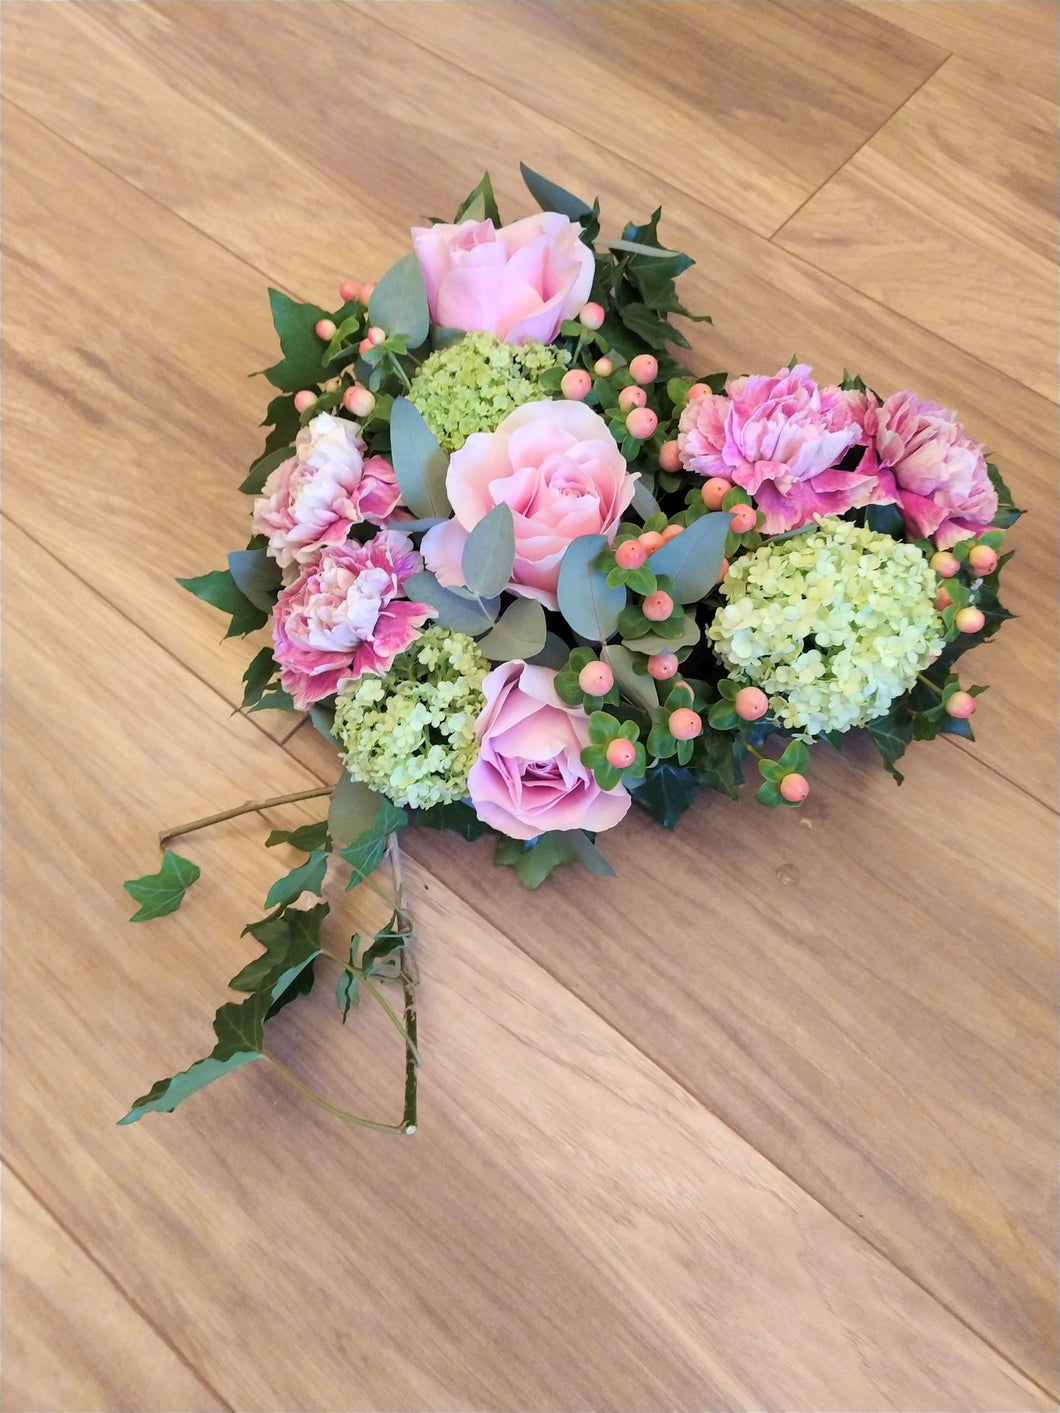 Parks Florist provide bespoke funeral flowers across Dorset. Our collection includes casket sprays, funeral wreaths, funeral sprays, funeral posies, funeral letters, funeral crosses. funeral hearts, and bespoke unique funeral designs. Our sympathy flowers come in a range of styles from traditional to modern/contemporary